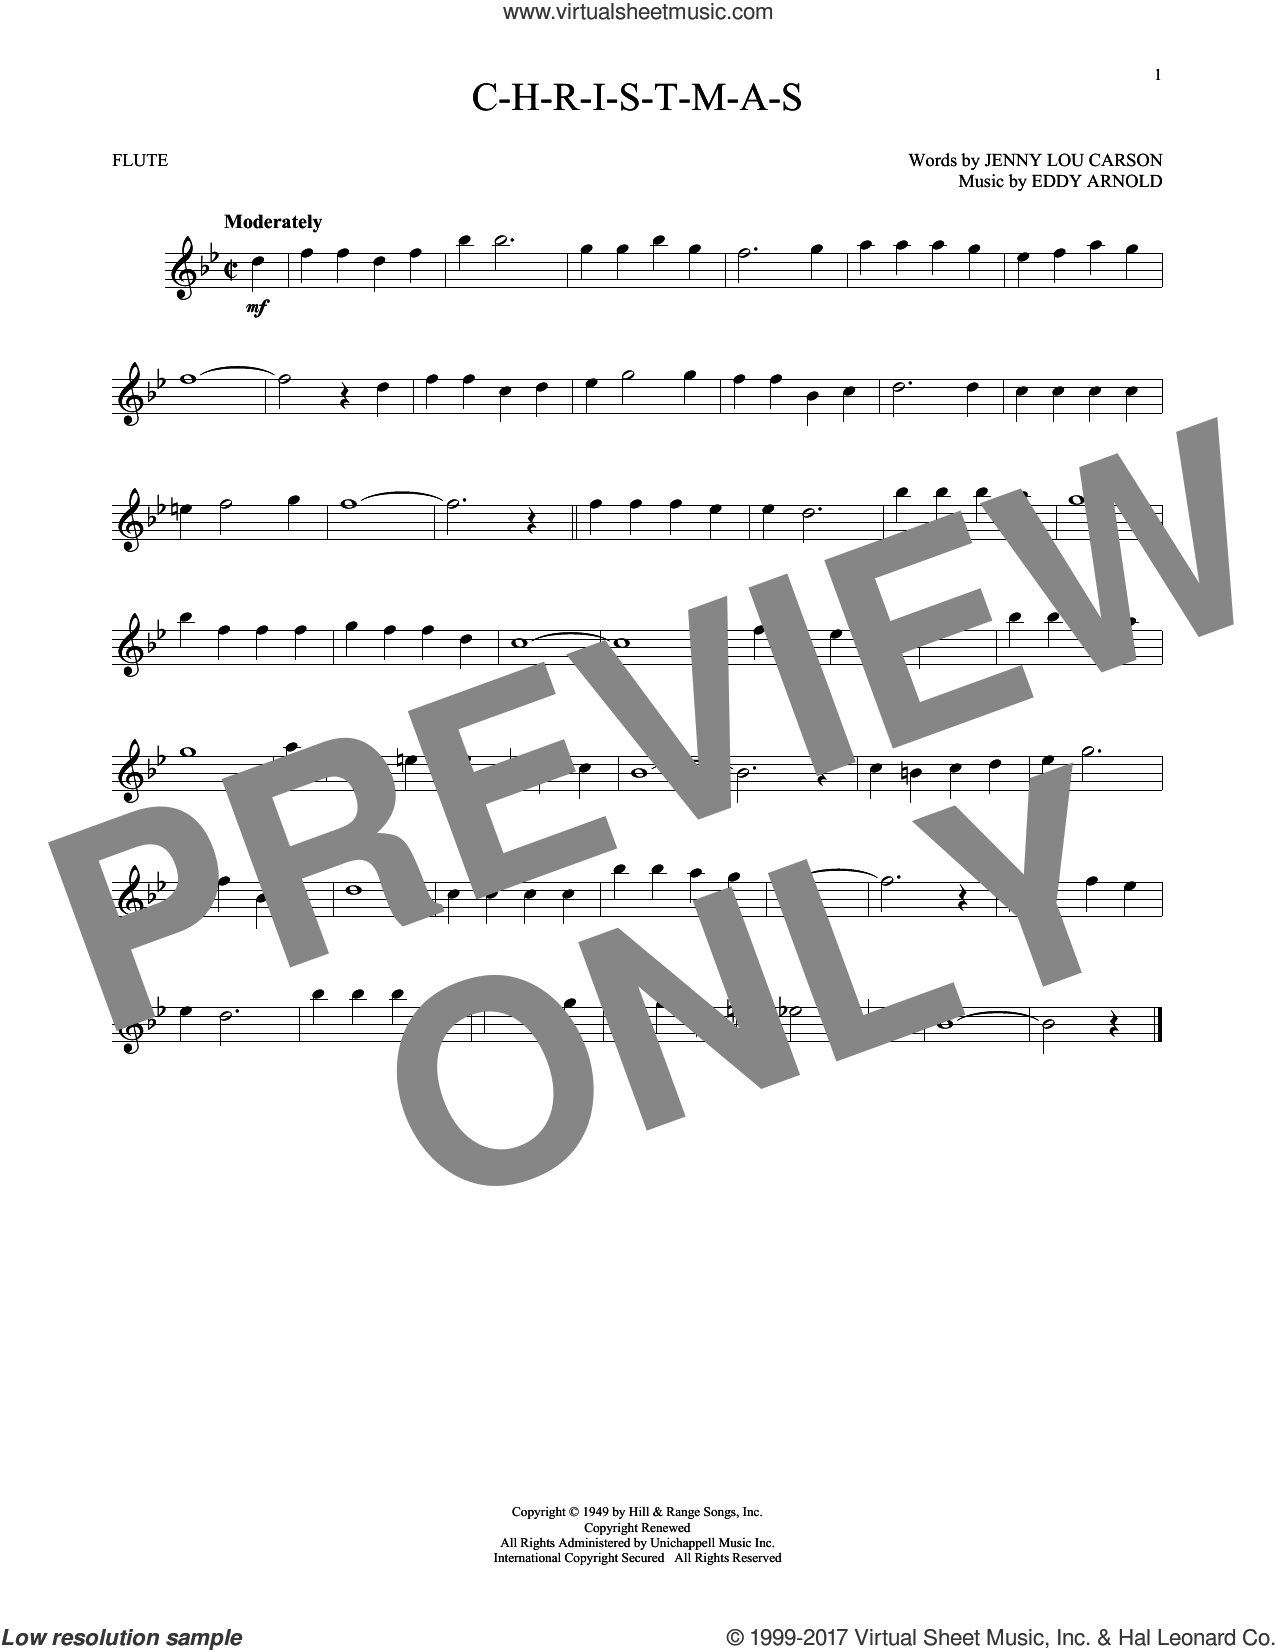 C-H-R-I-S-T-M-A-S sheet music for flute solo by Eddy Arnold and Jenny Lou Carson, intermediate skill level